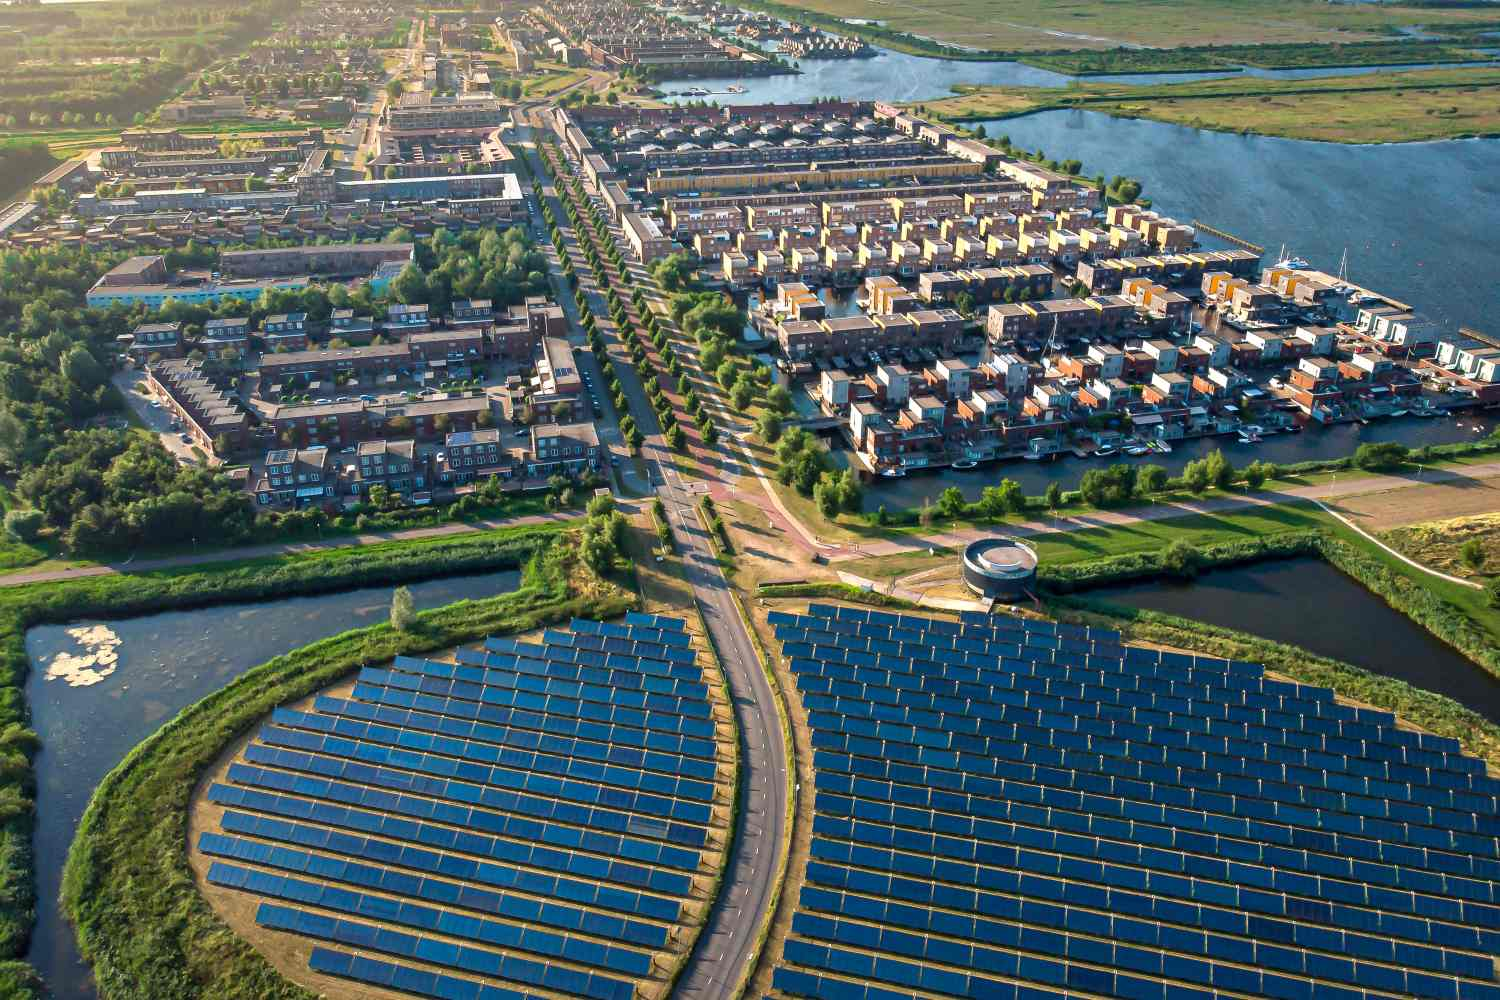 A community solar project in The Netherlands